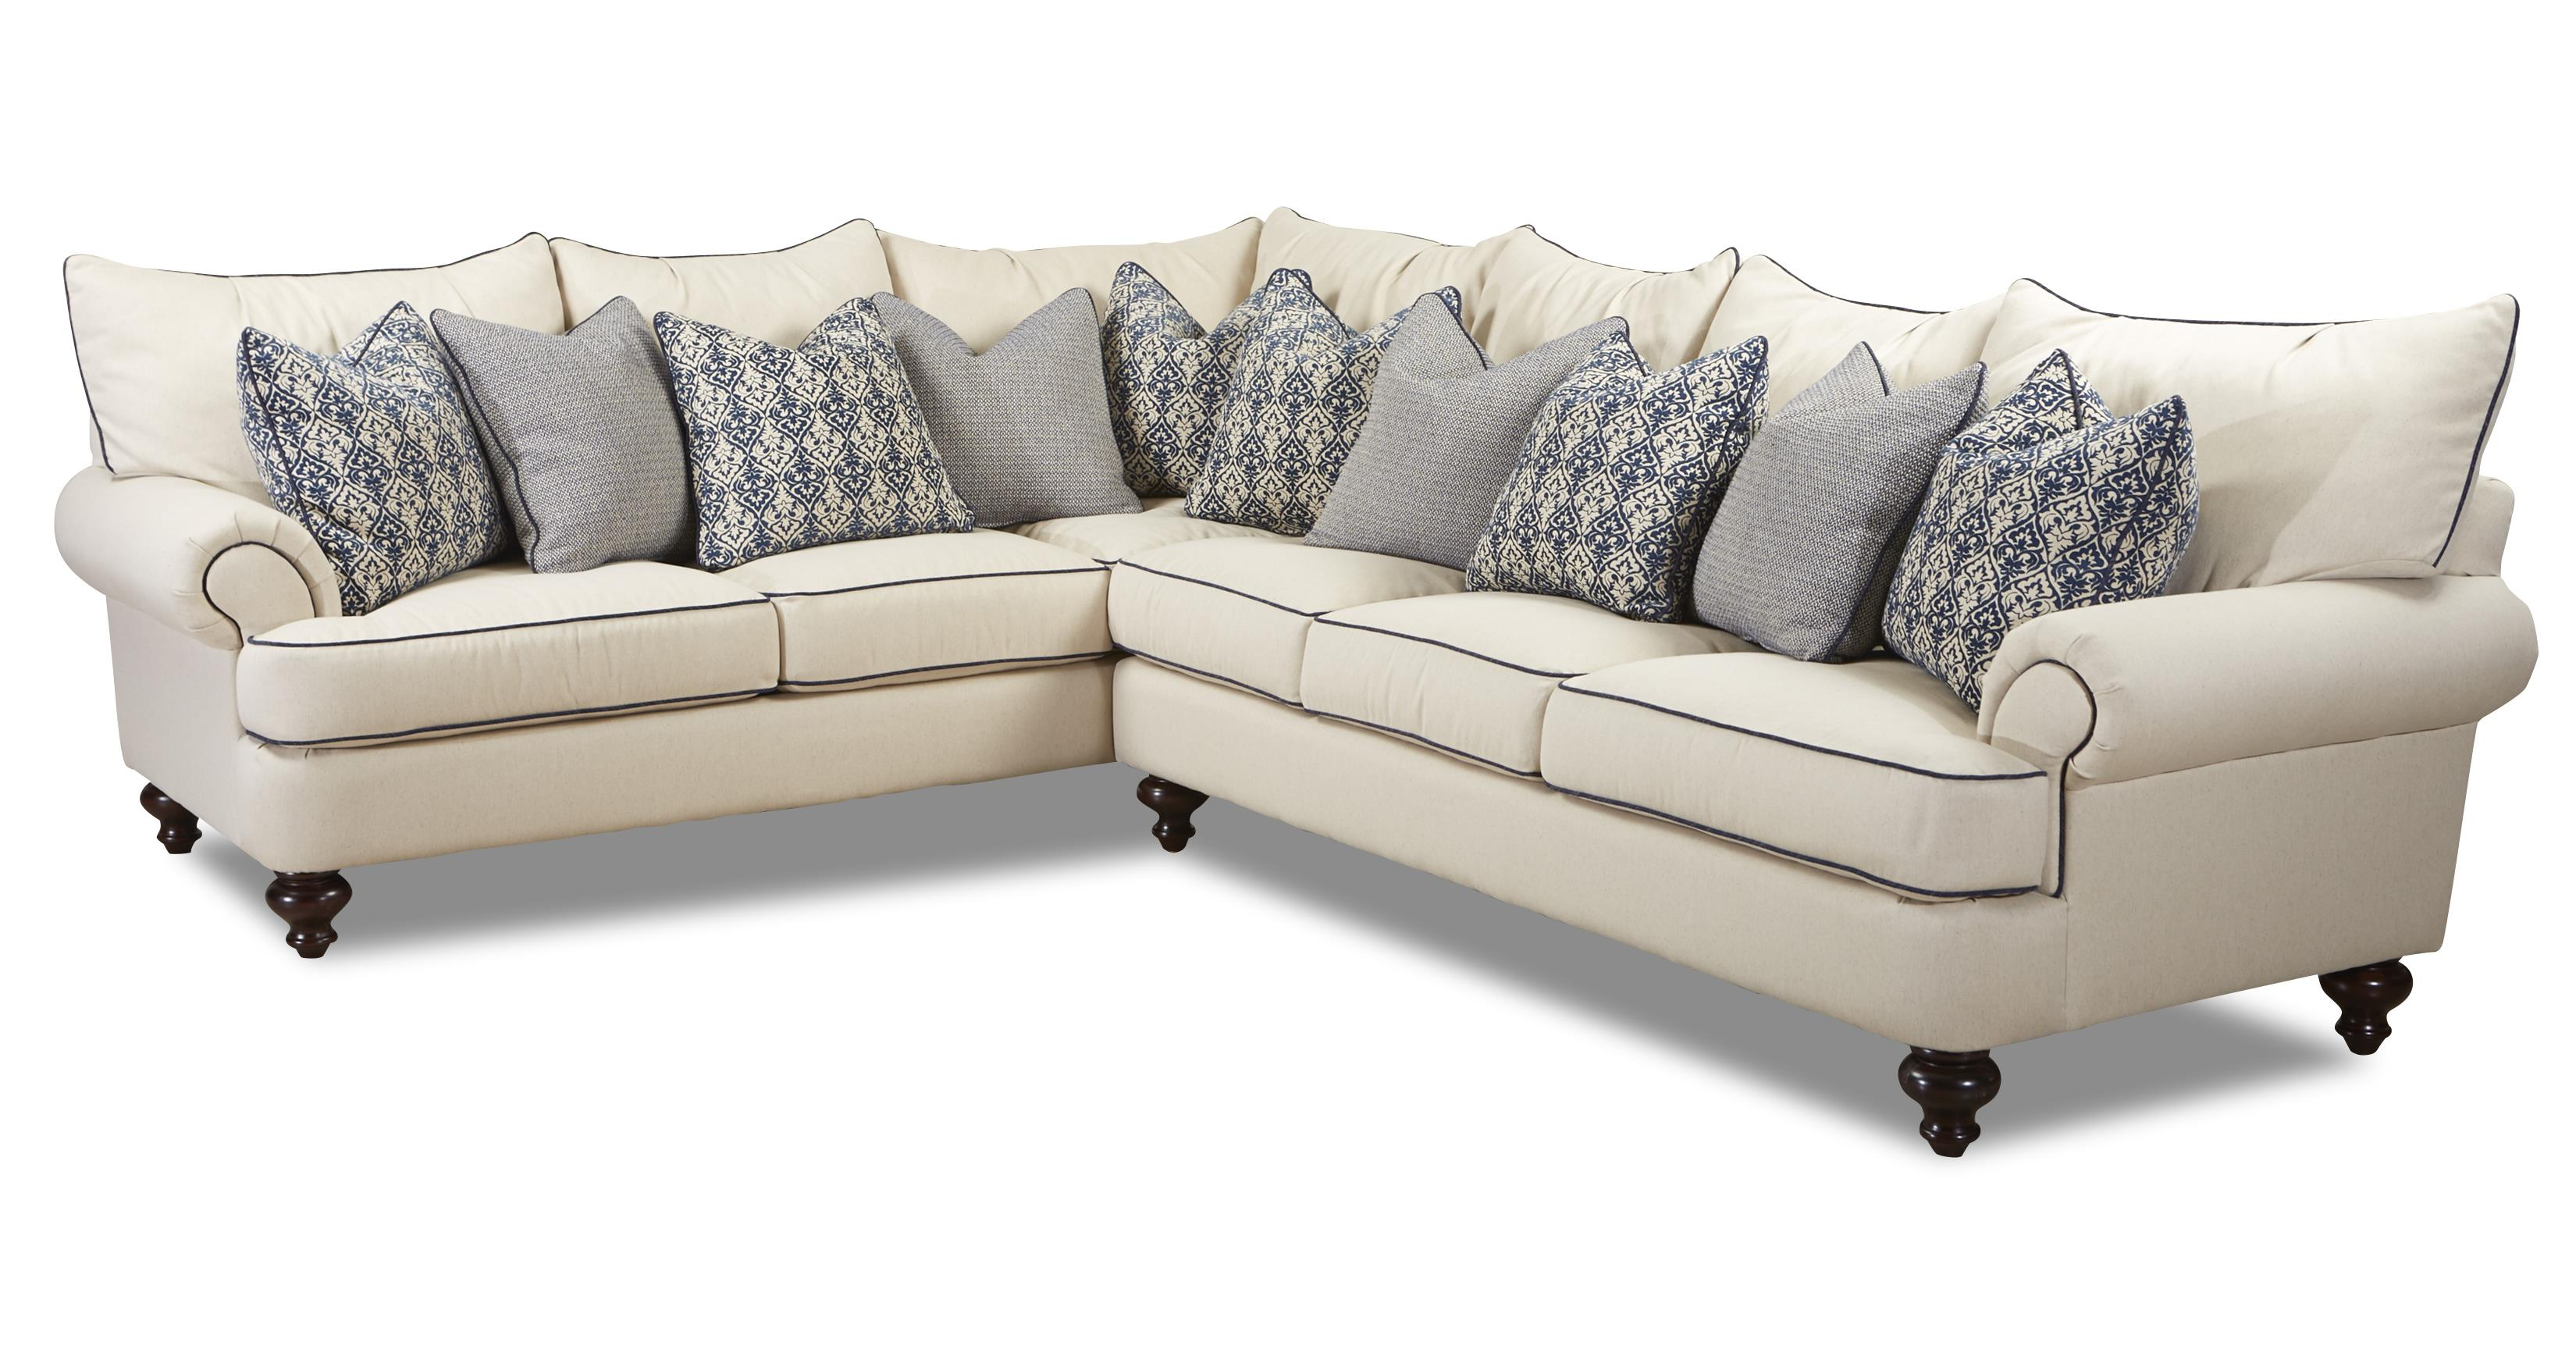 Klaussner Ashworth Shabby Chic Sectional Sofa Wayside